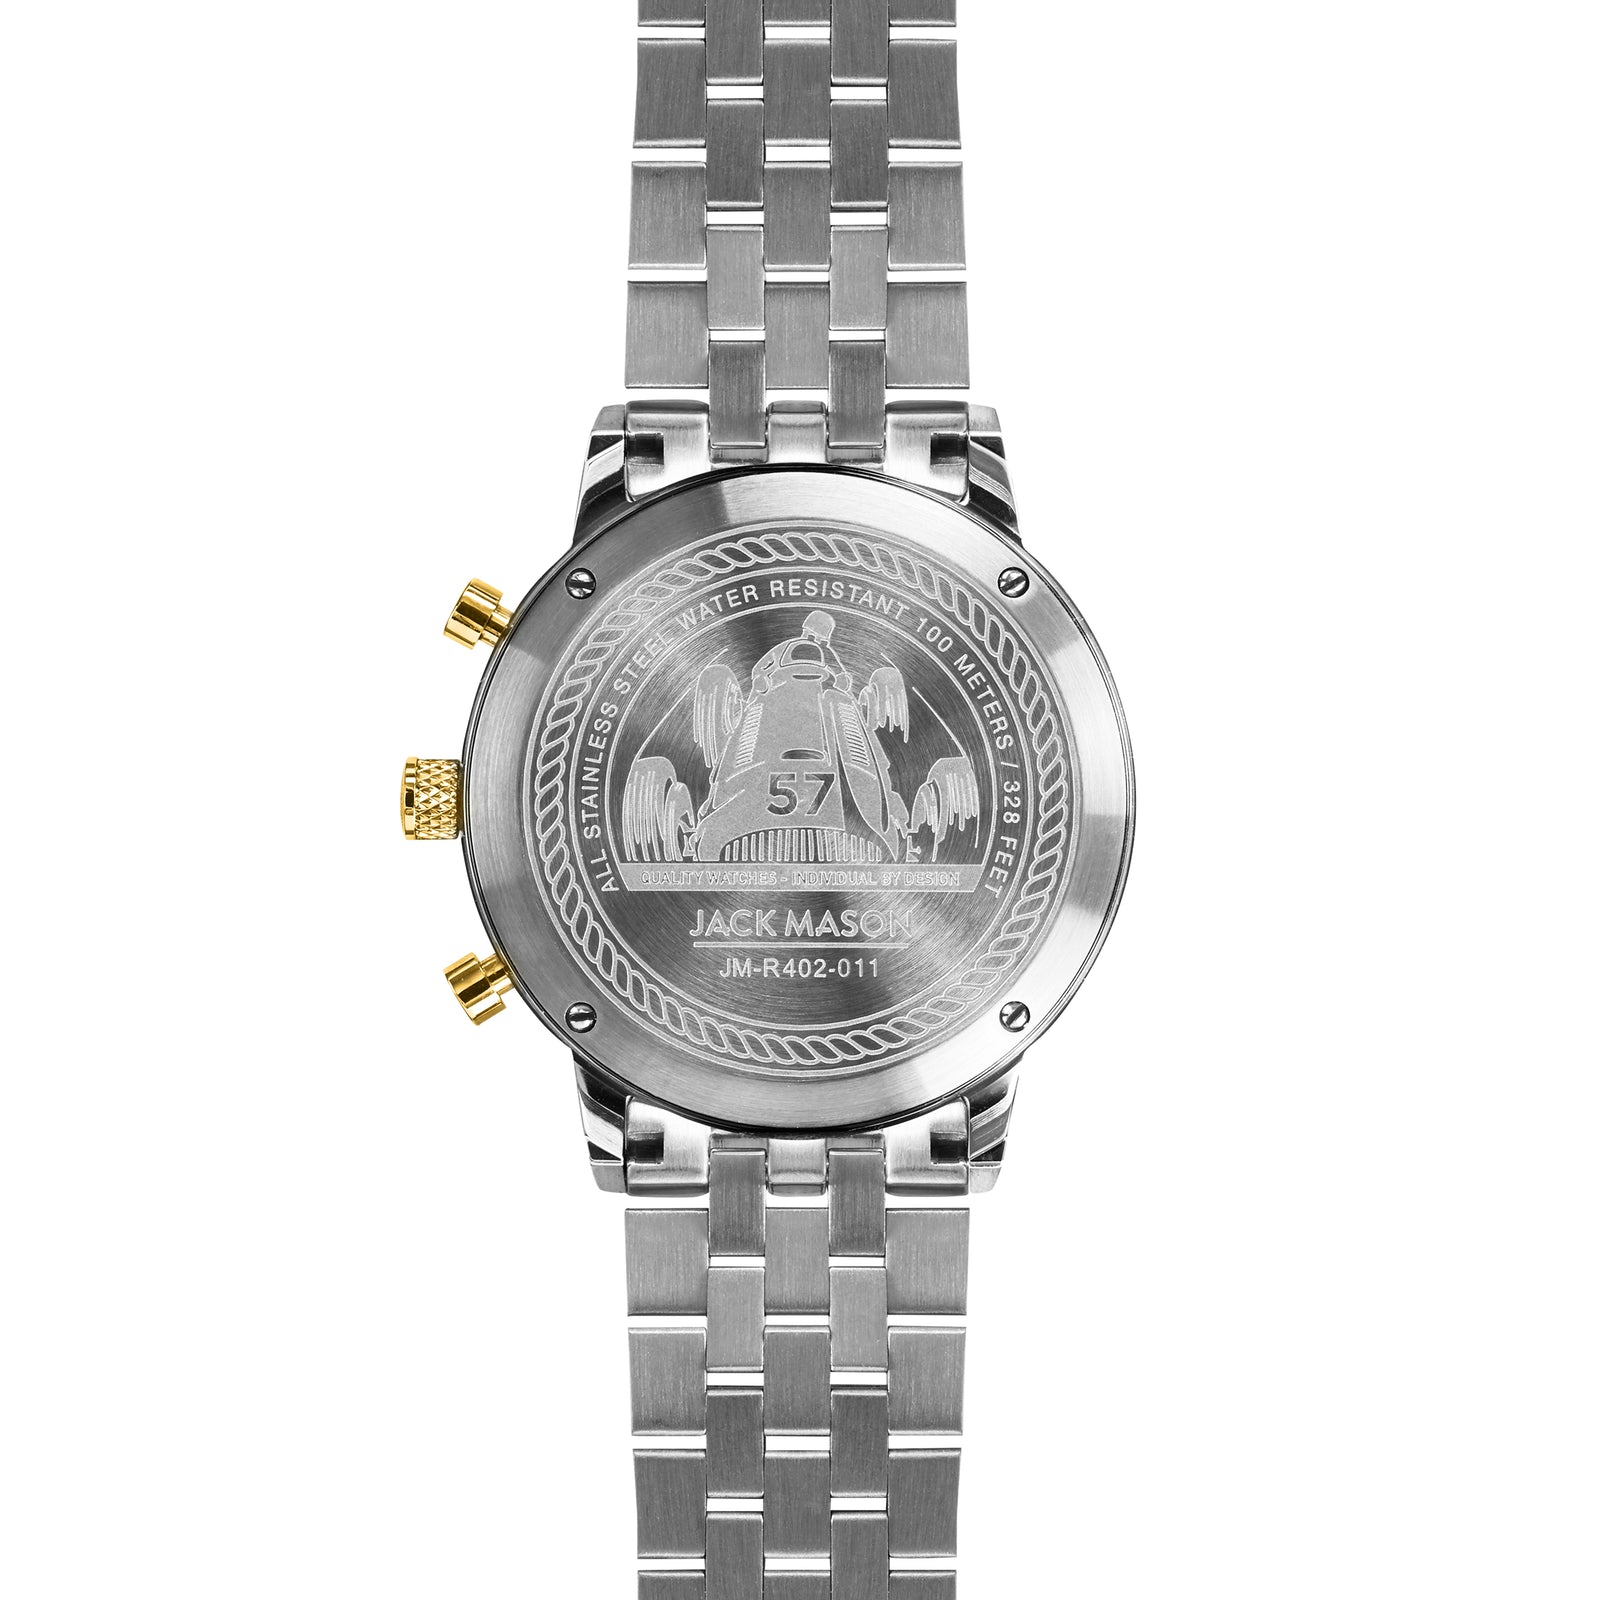 The back of the bracelet style watch band on the racing chronograph watch